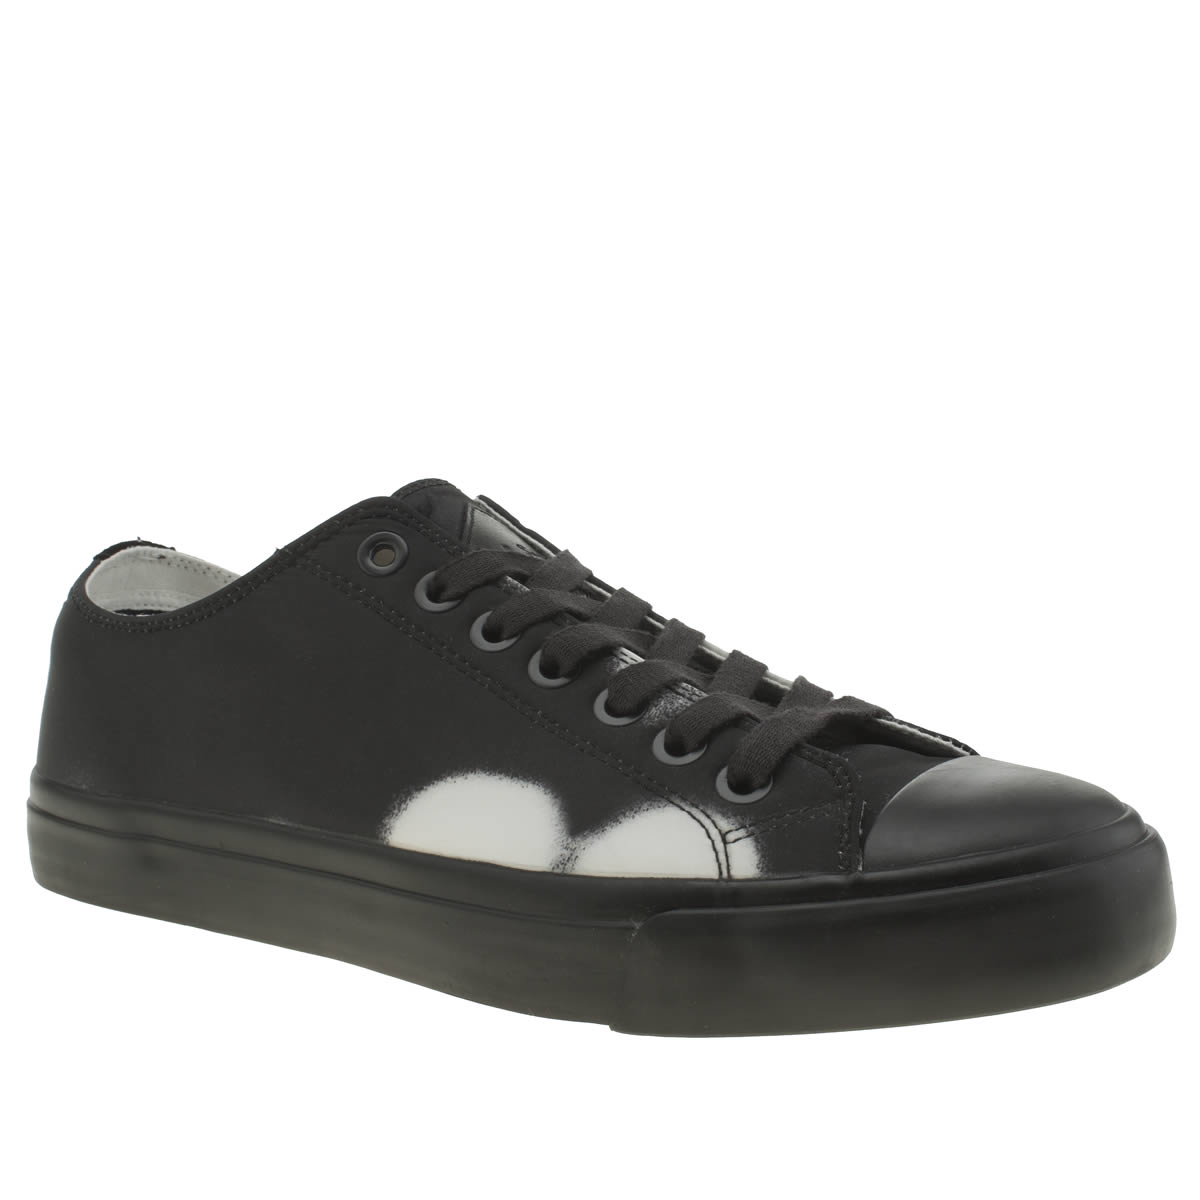 Paul Smith Shoes Paul Smith Shoes Black & White Indie Trainers